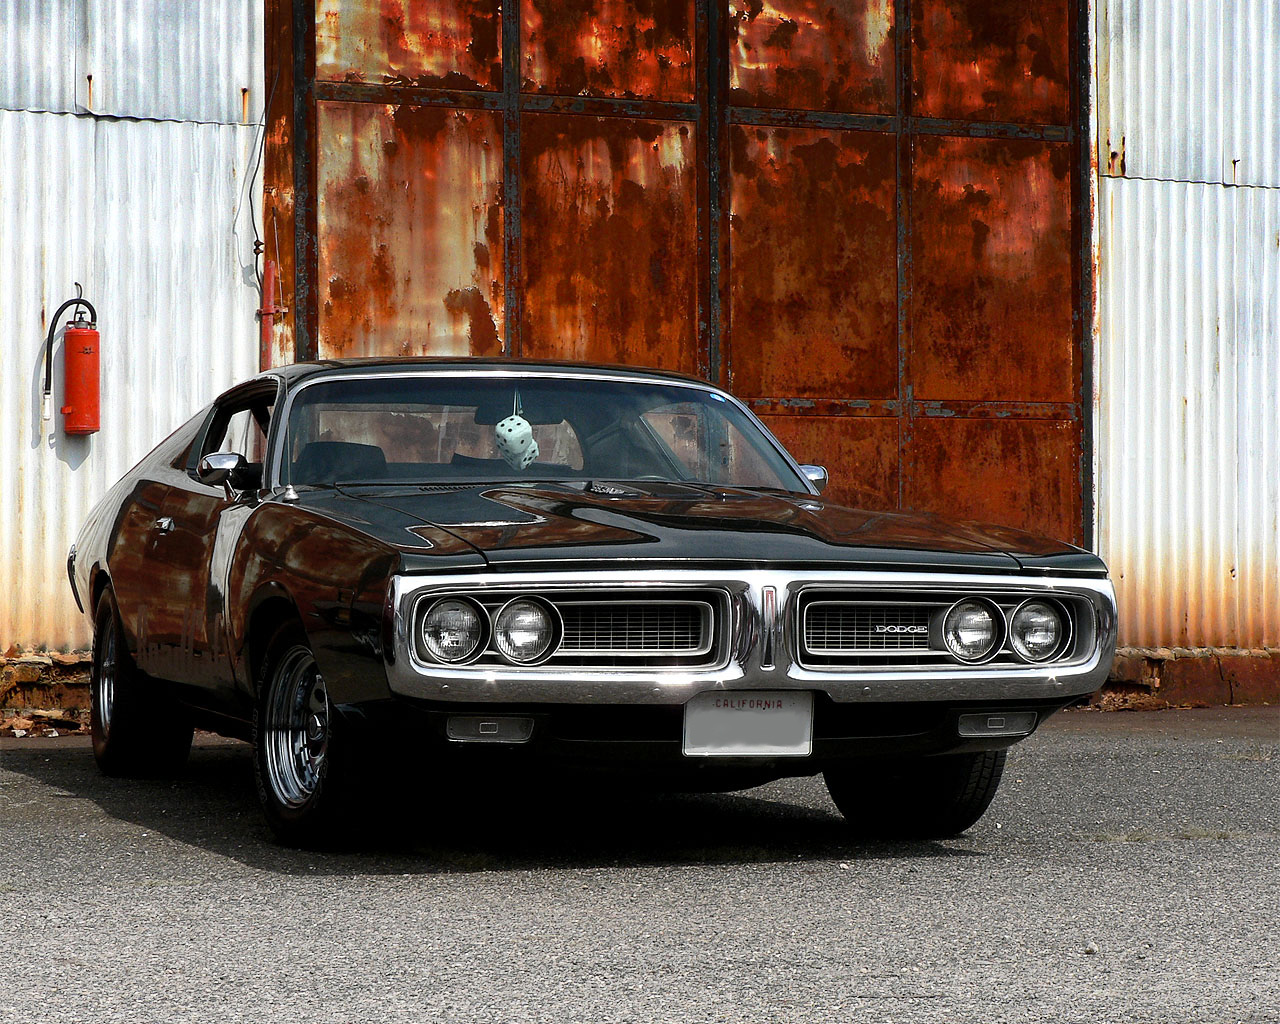 Dodge charger b body wikipedia for Old black and white photos for sale